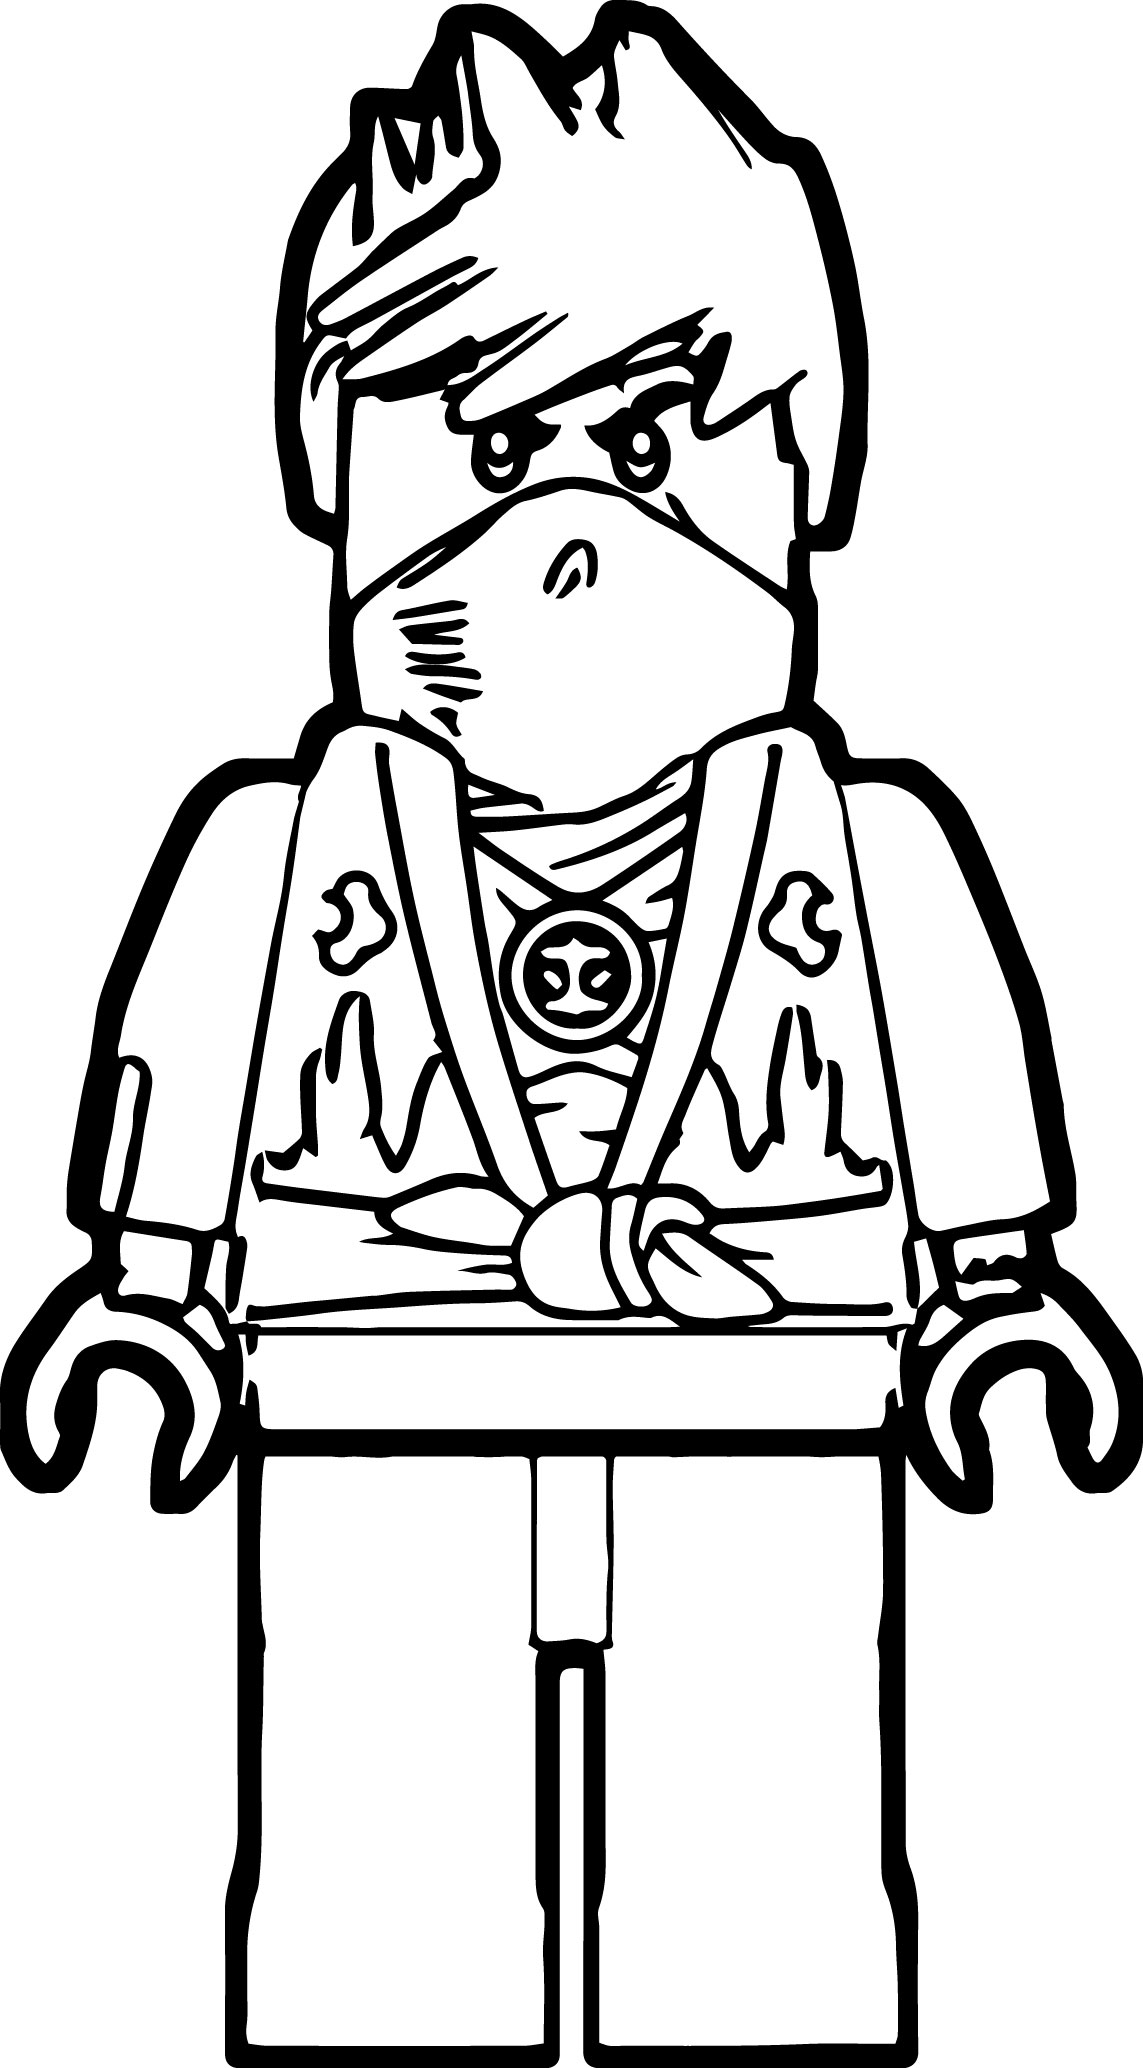 coloring lego printables lego coloring pages free download on clipartmag coloring lego printables